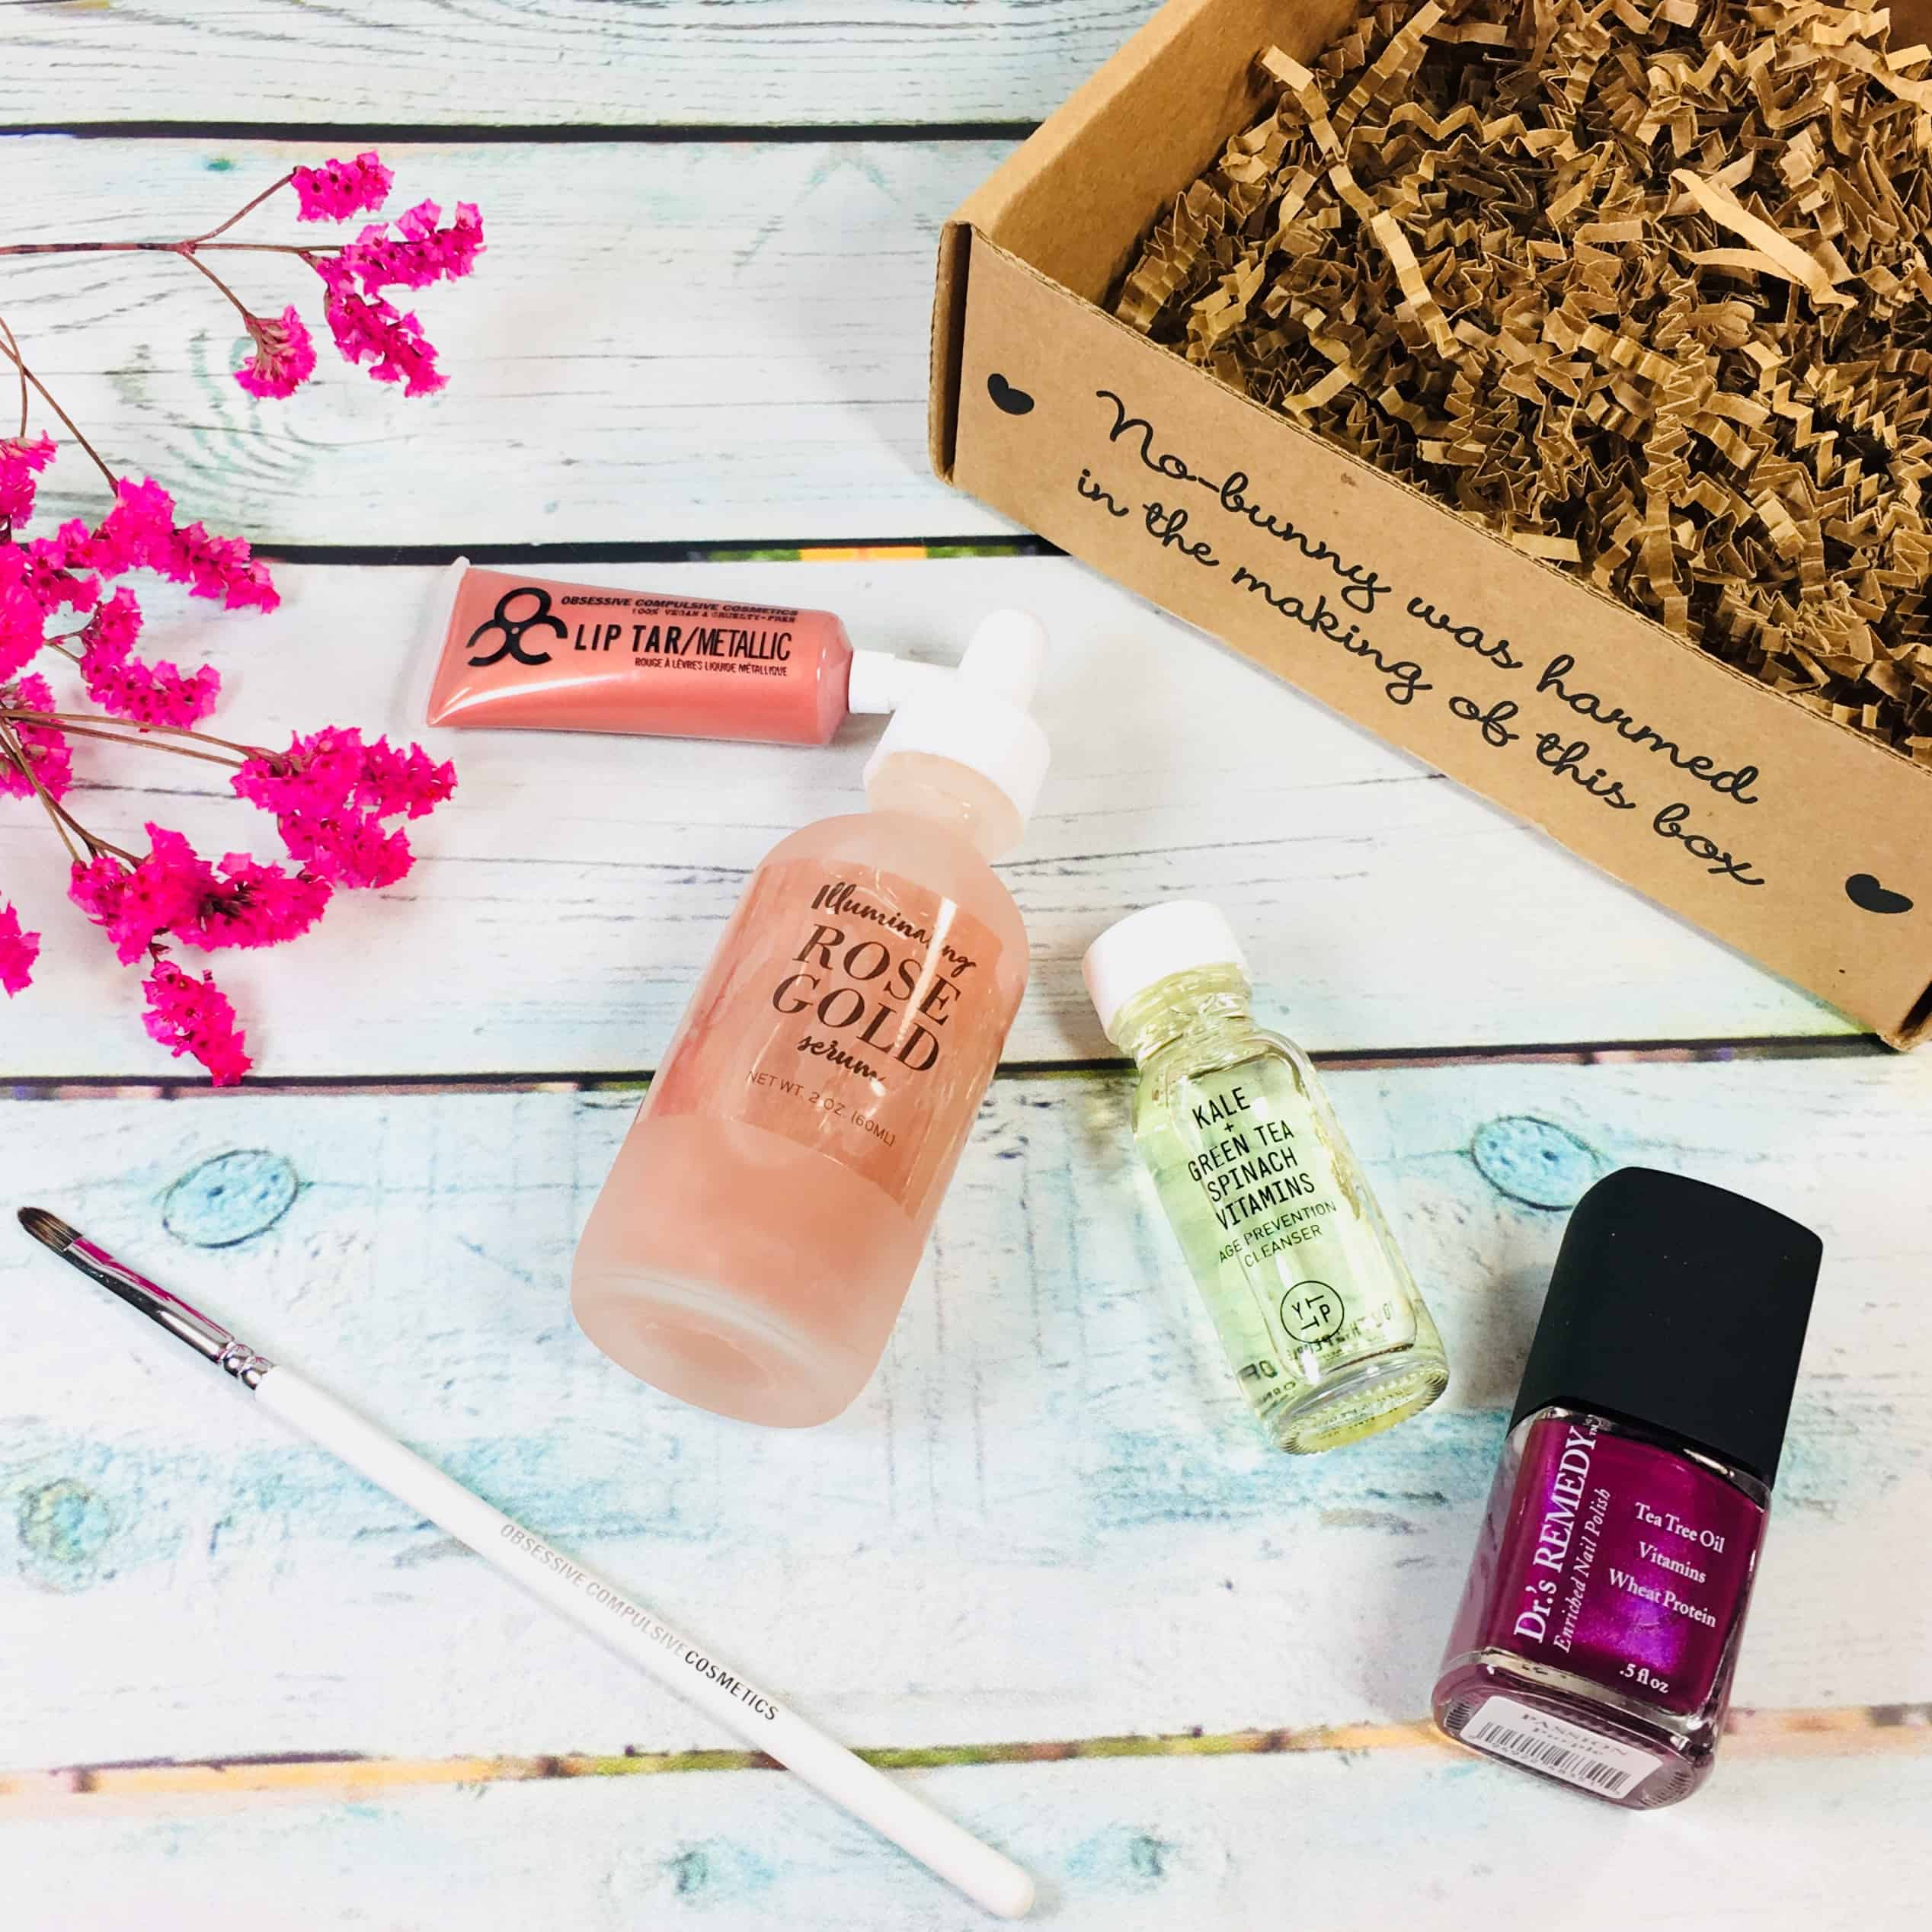 Vegan Cuts Beauty Box March 2018 Subscription Box Review